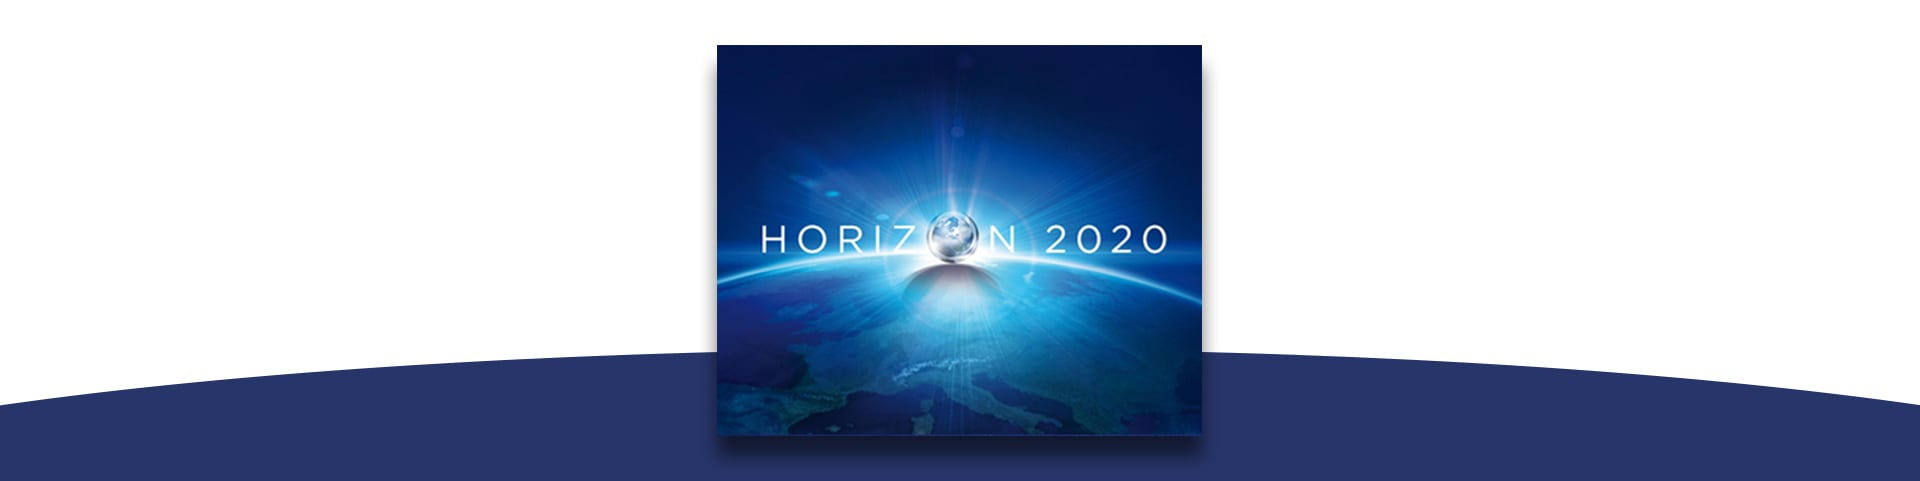 Horizon 2020no alt text set su stradedeuropa.eu